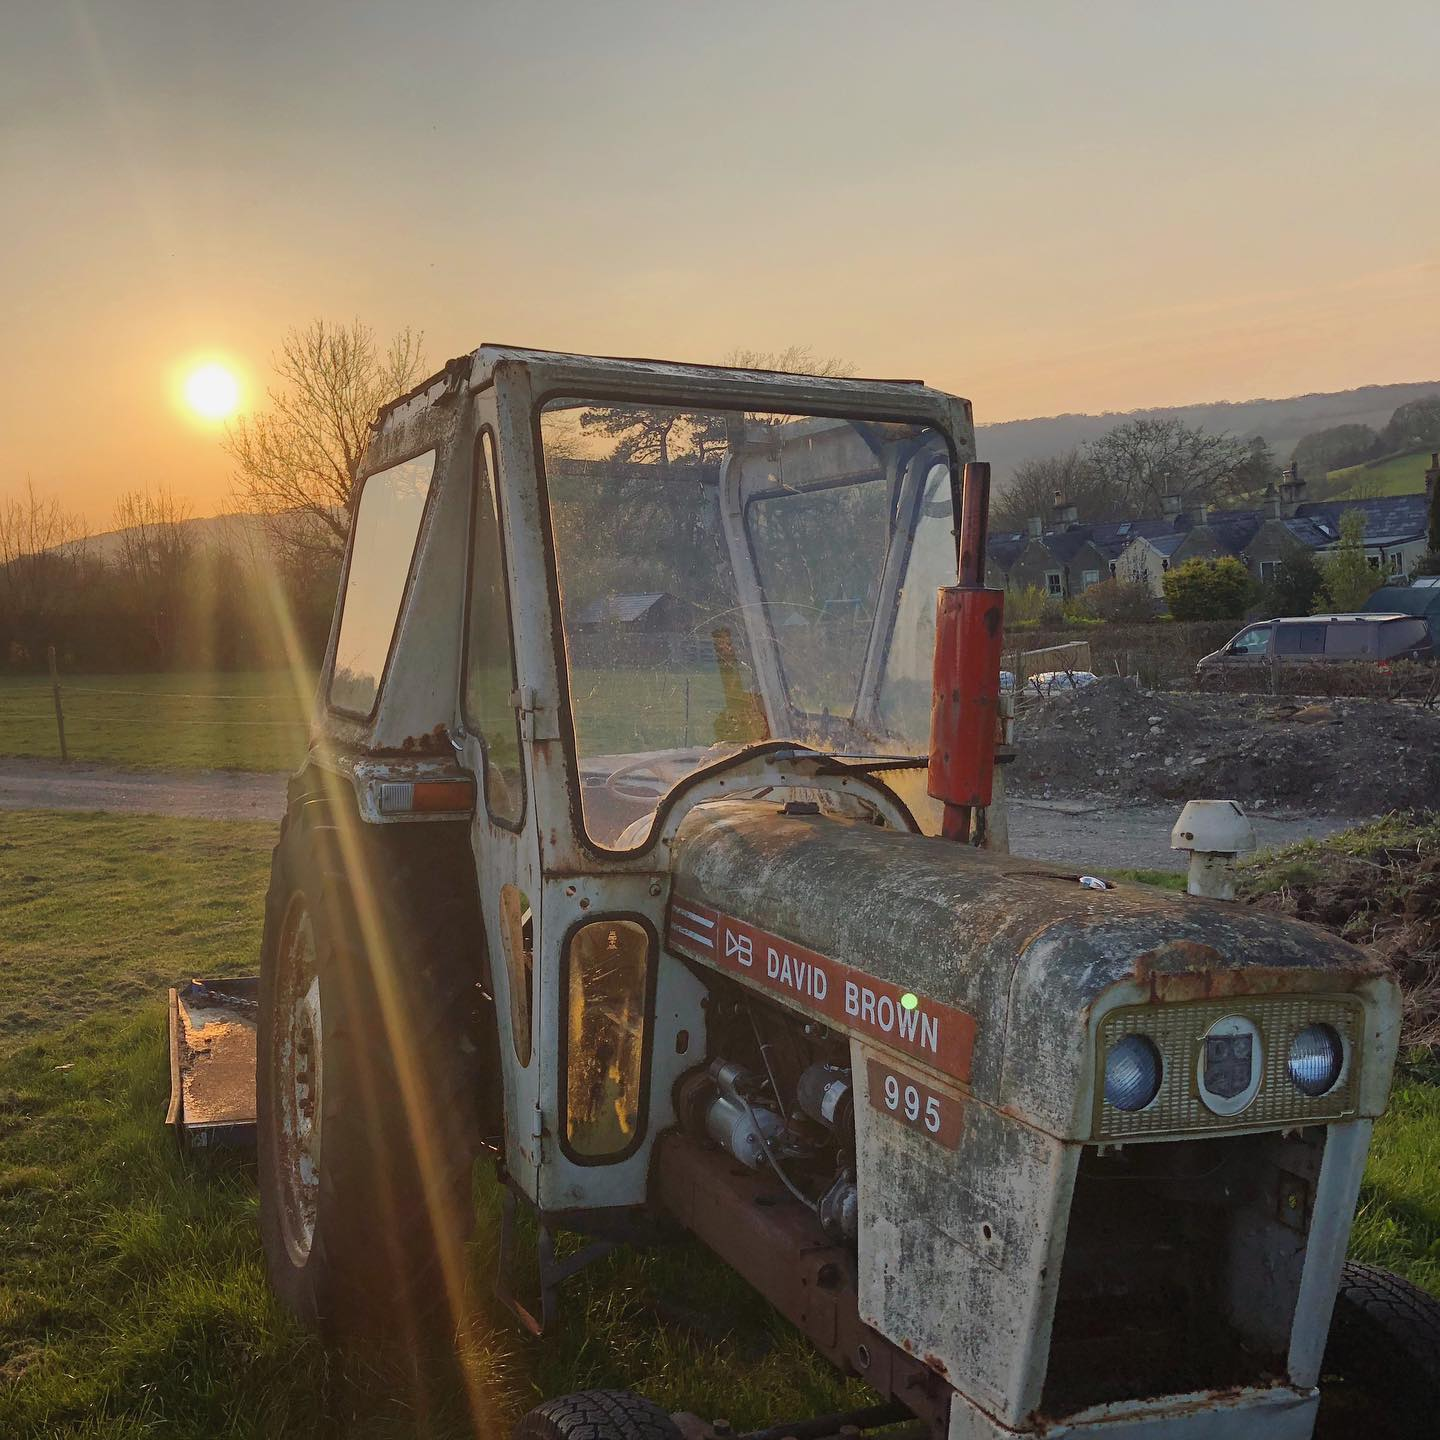 We captured this on yesterday's stroll  ...#villagelife #countryliving #wiltshire #tractor #farming #sunset #boxvillage #eveningstroll #exercise #stayathome #home